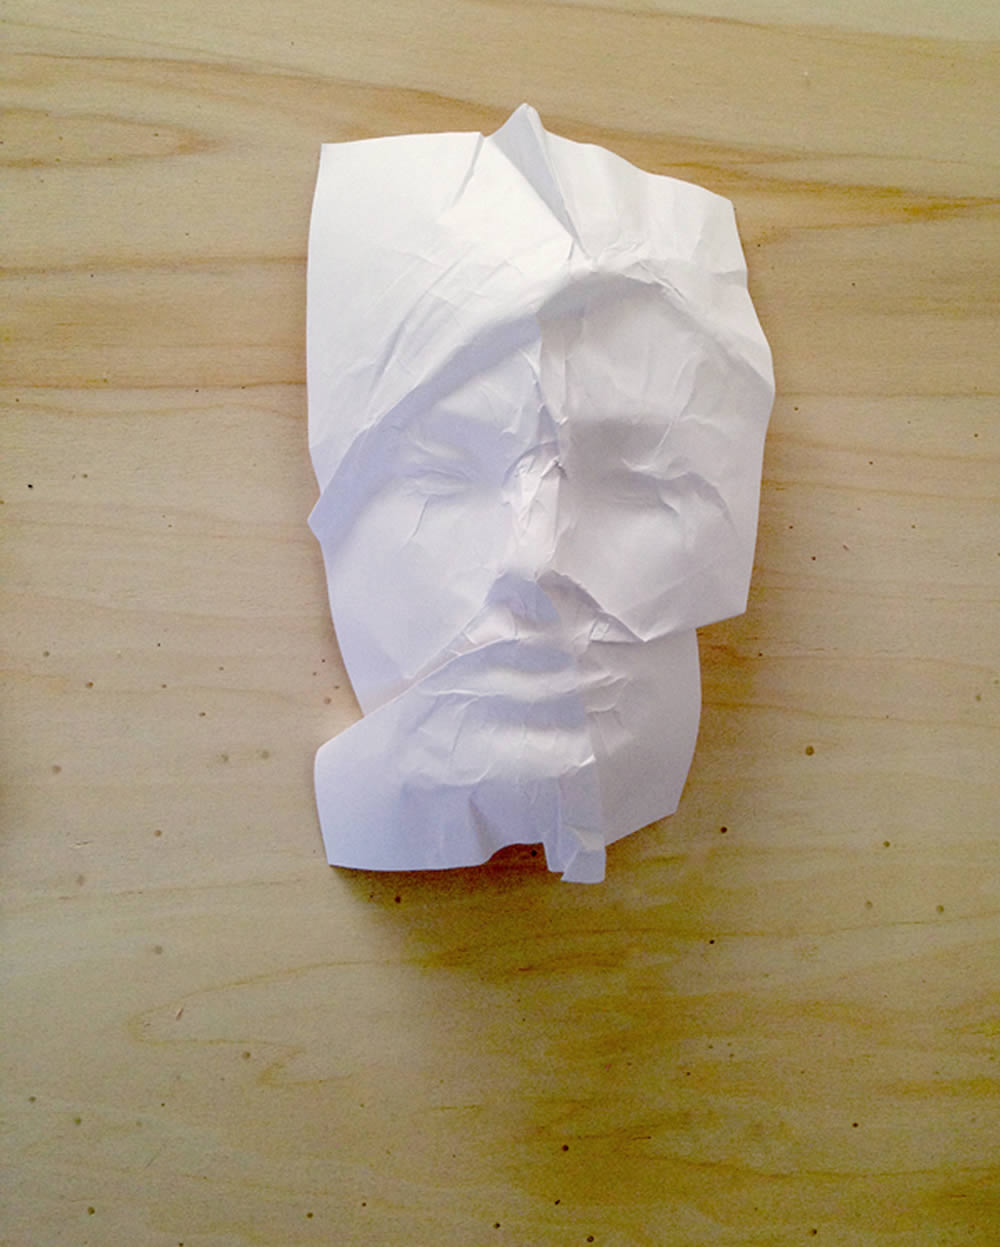 face sculpture made with paper by ibon mainer